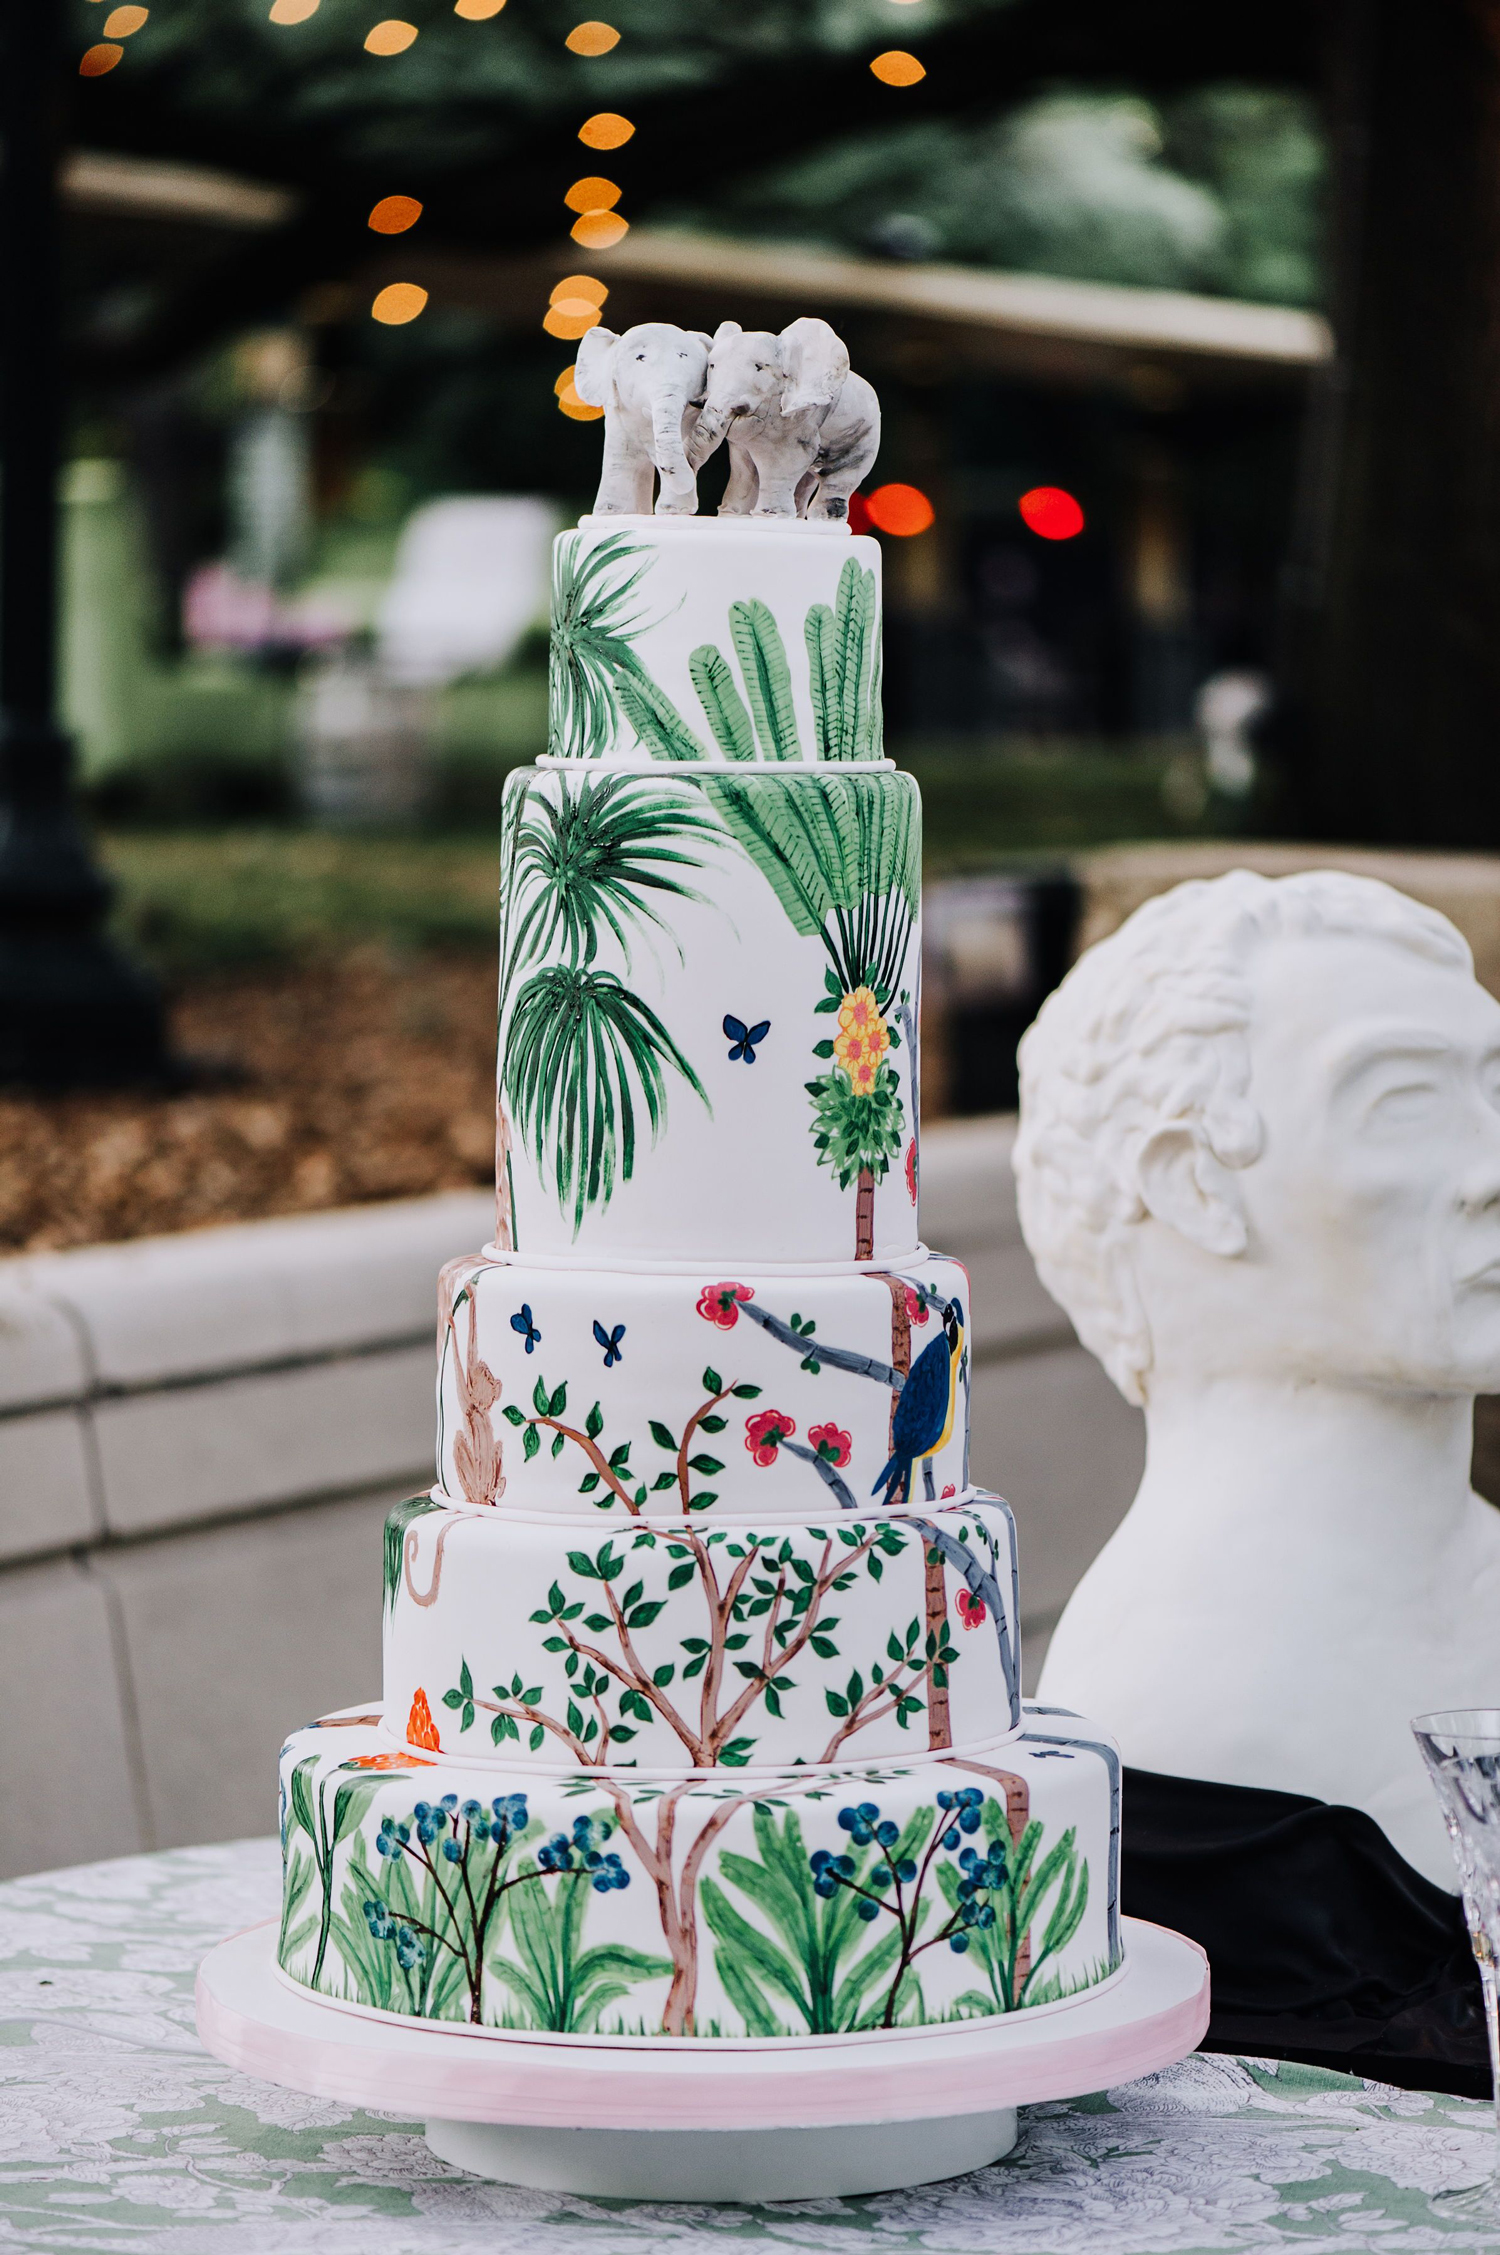 cathleen and winston wedding amazon theme painted cake topped with two elephants